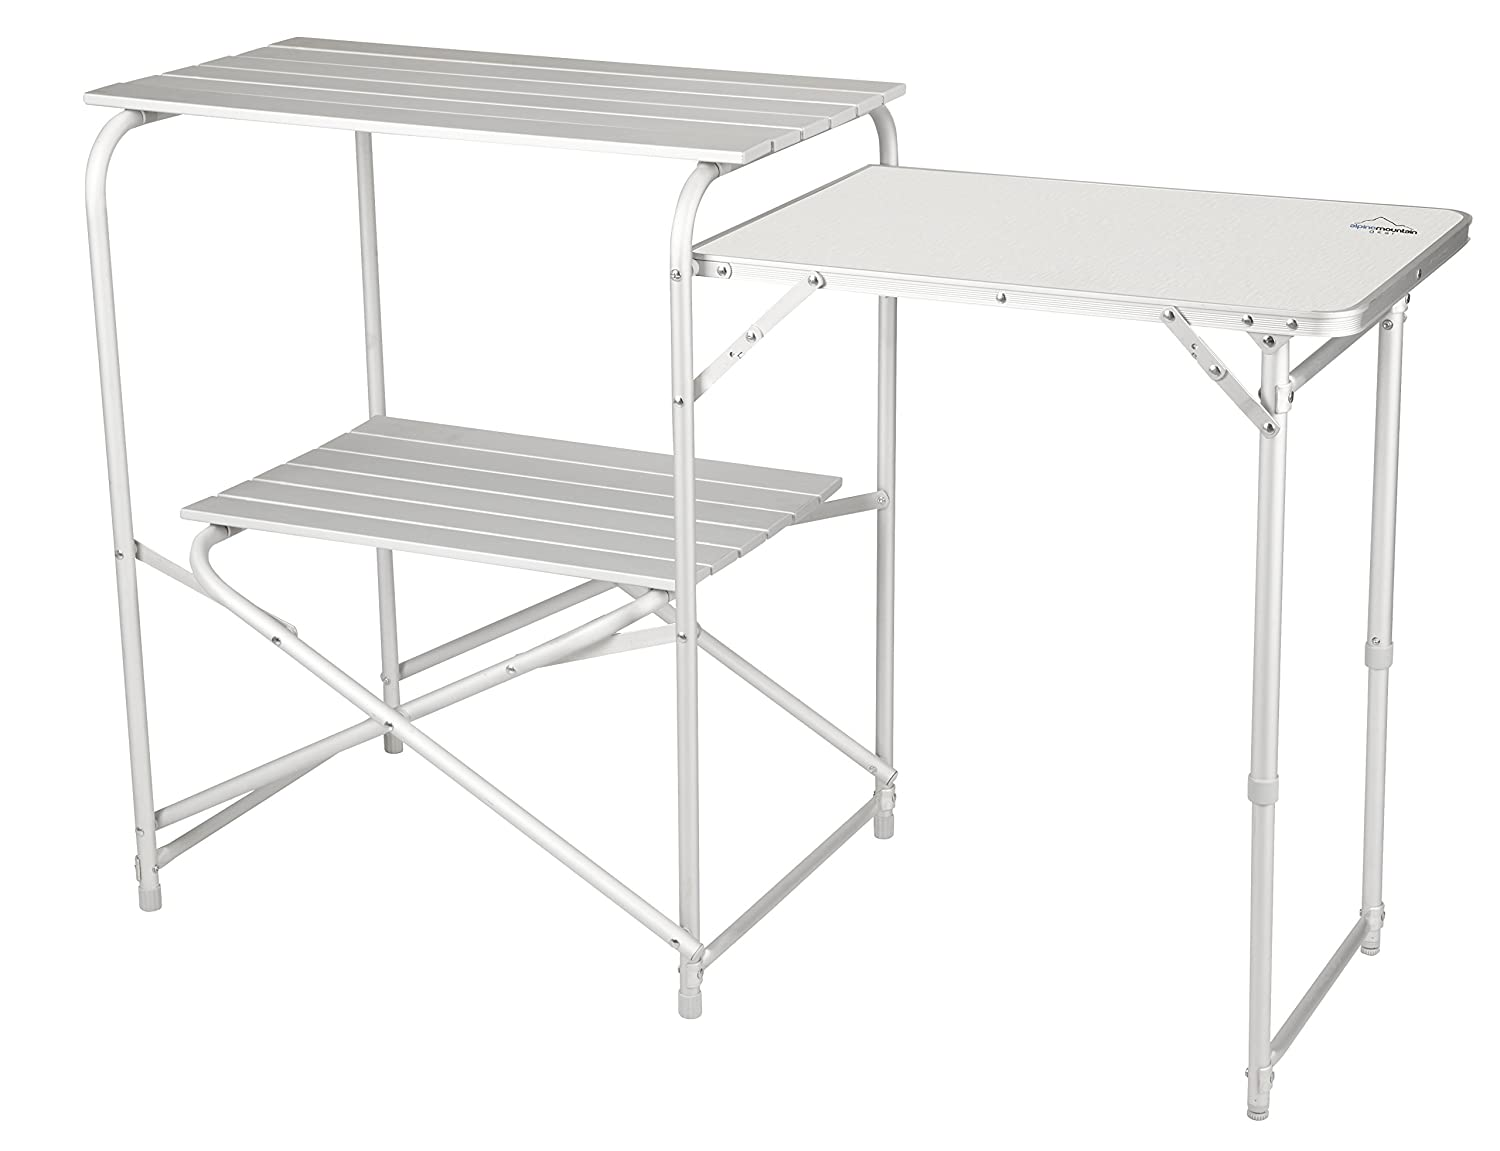 Amazon.com : Alpine Mountain Gear Roll Top Kitchen Table, Grey ...